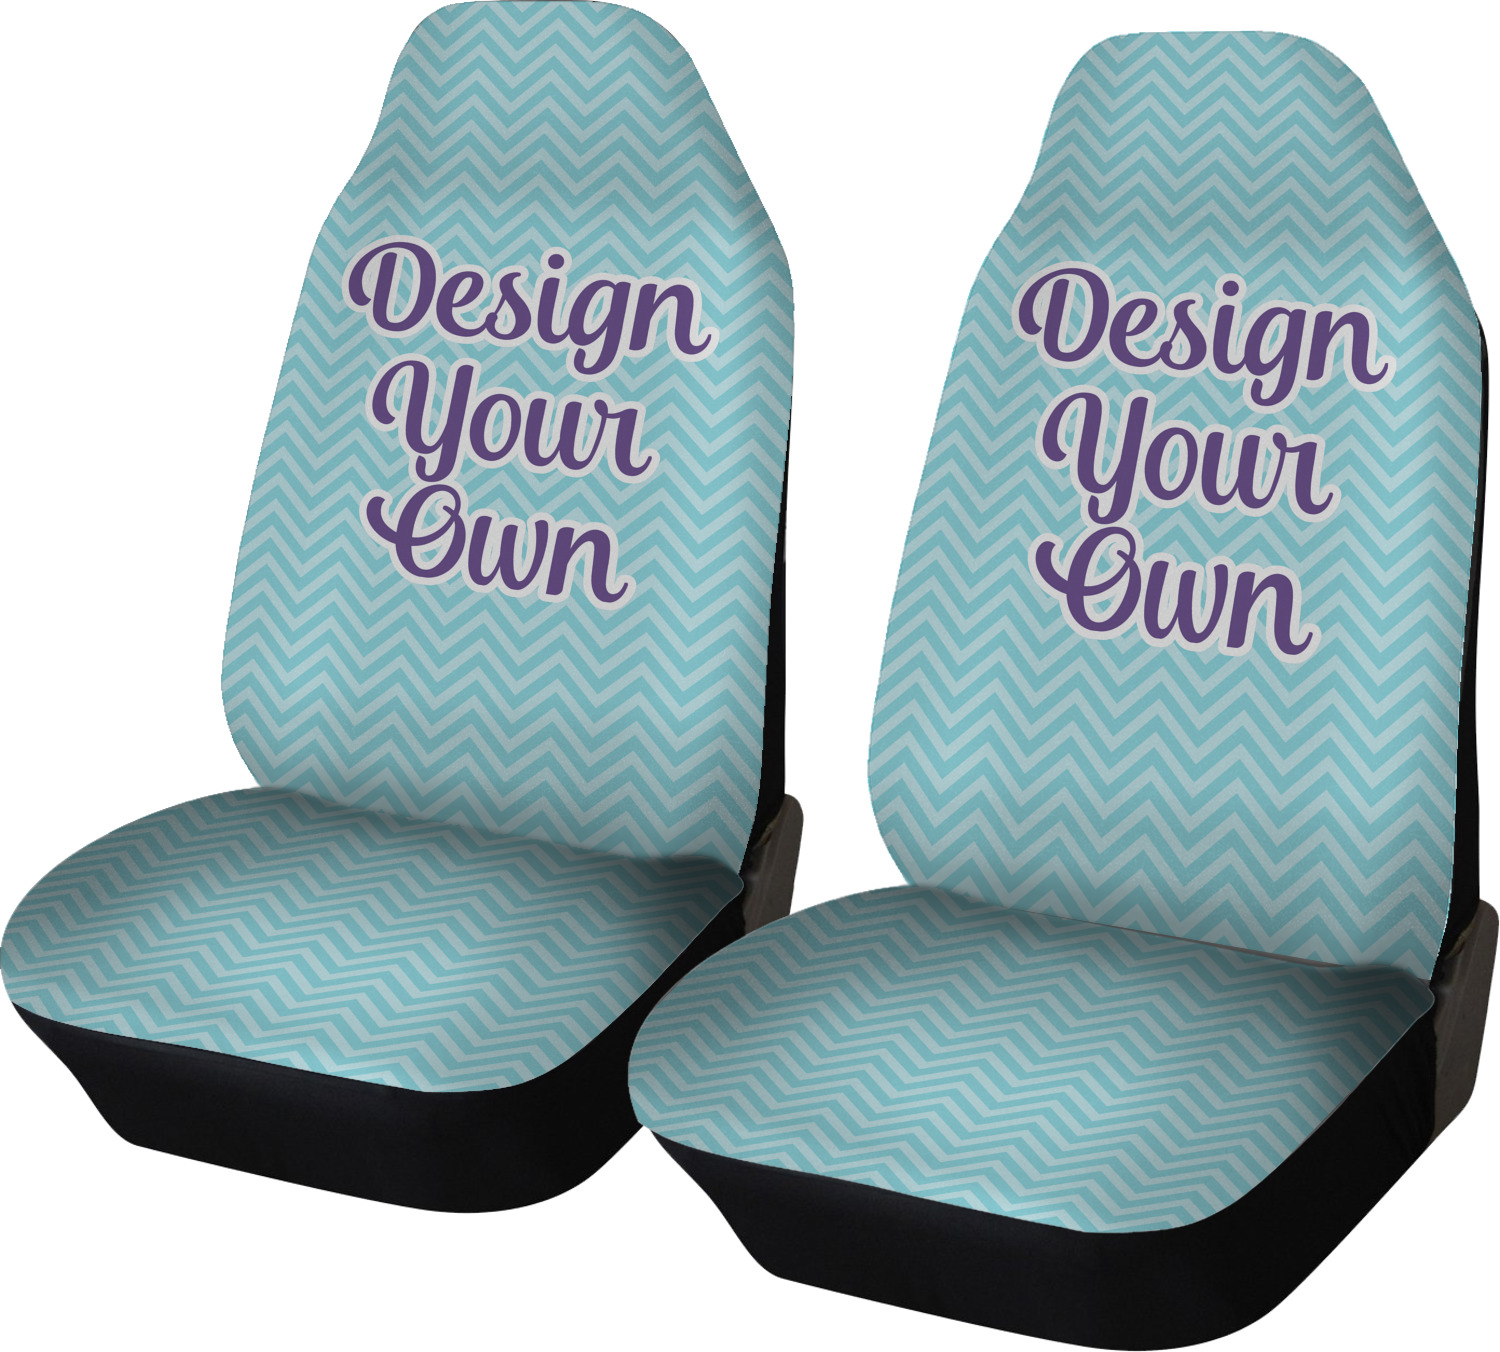 Magnificent Design Your Own Personalized Car Seat Covers Set Of Two Cjindustries Chair Design For Home Cjindustriesco